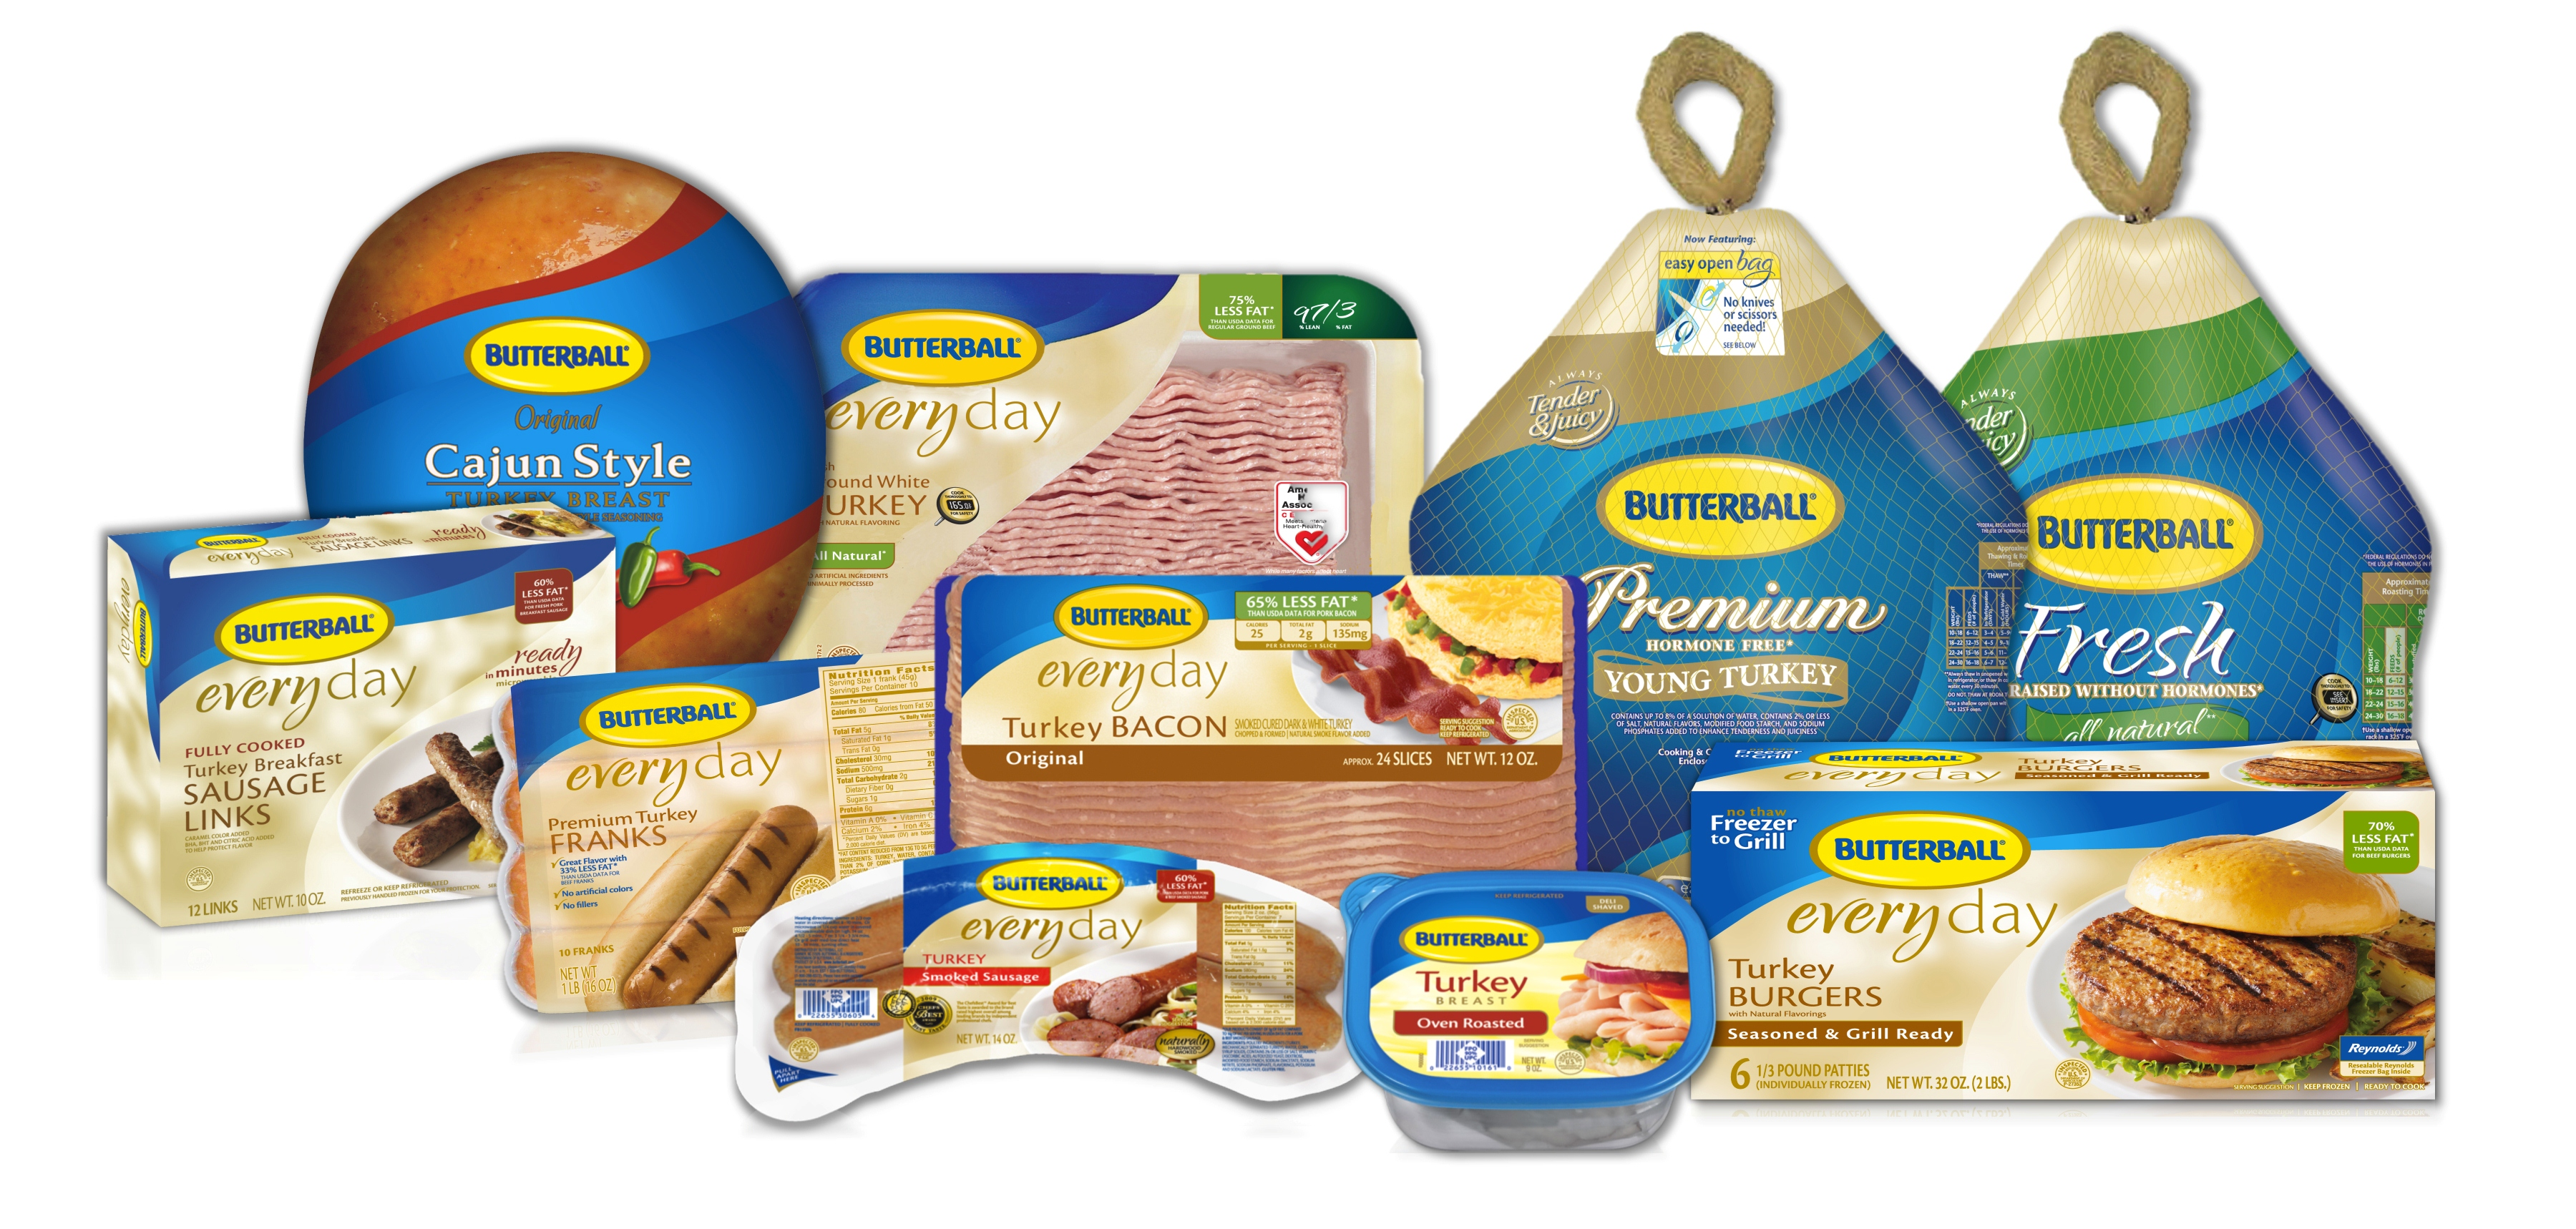 Butterball Coupons 5 00 In Butterball Coupons Living